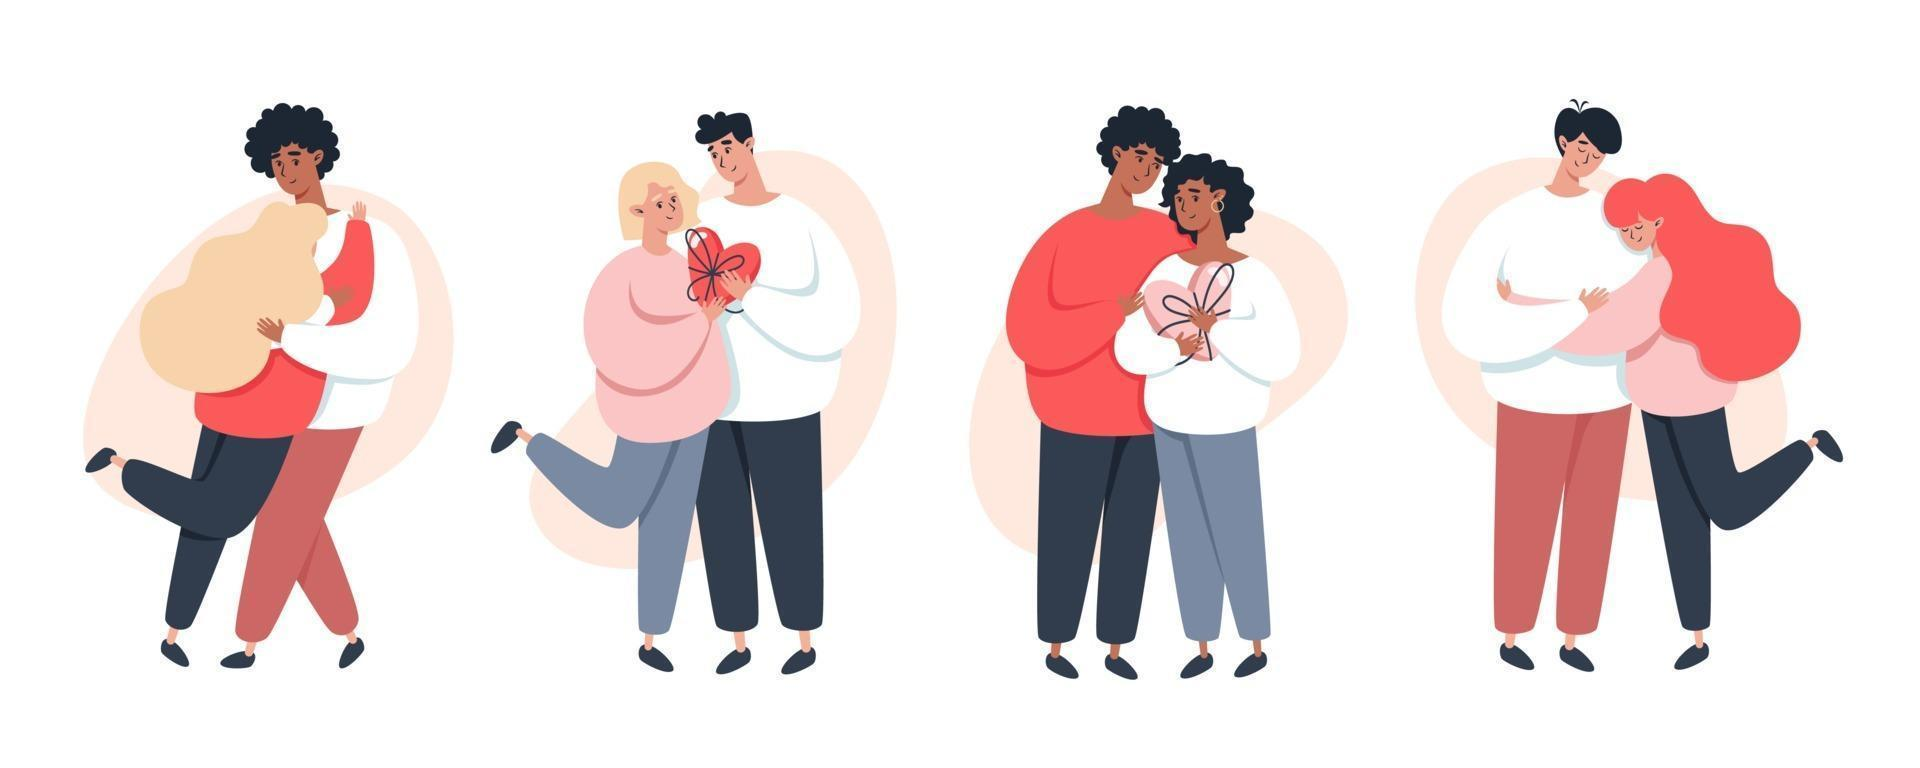 Collection of young loving couples holding hands walking together on white background vector